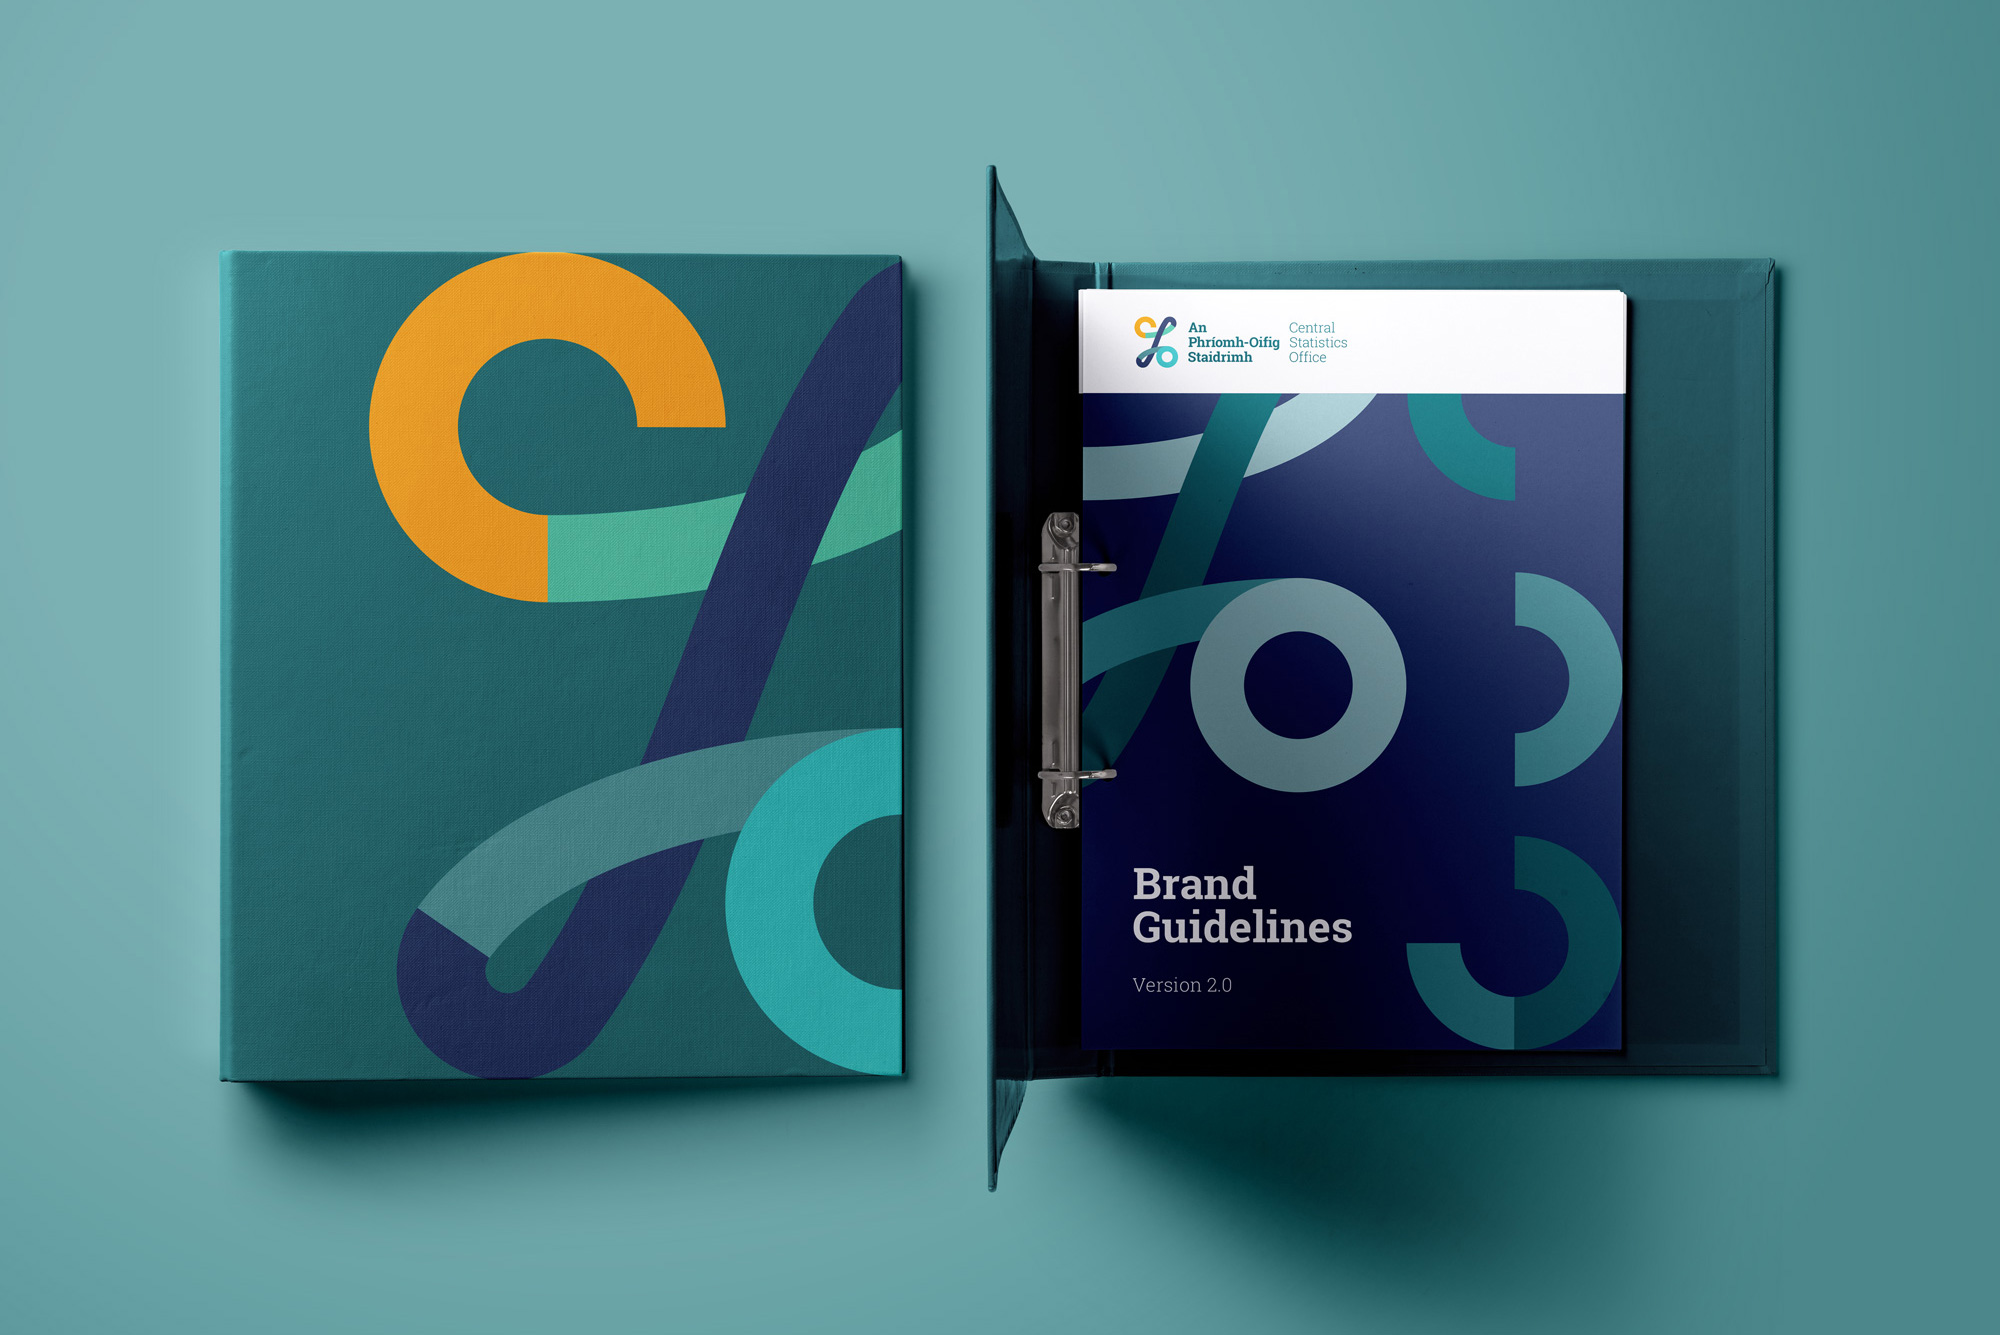 Cover image: Central Statistics Office Branding